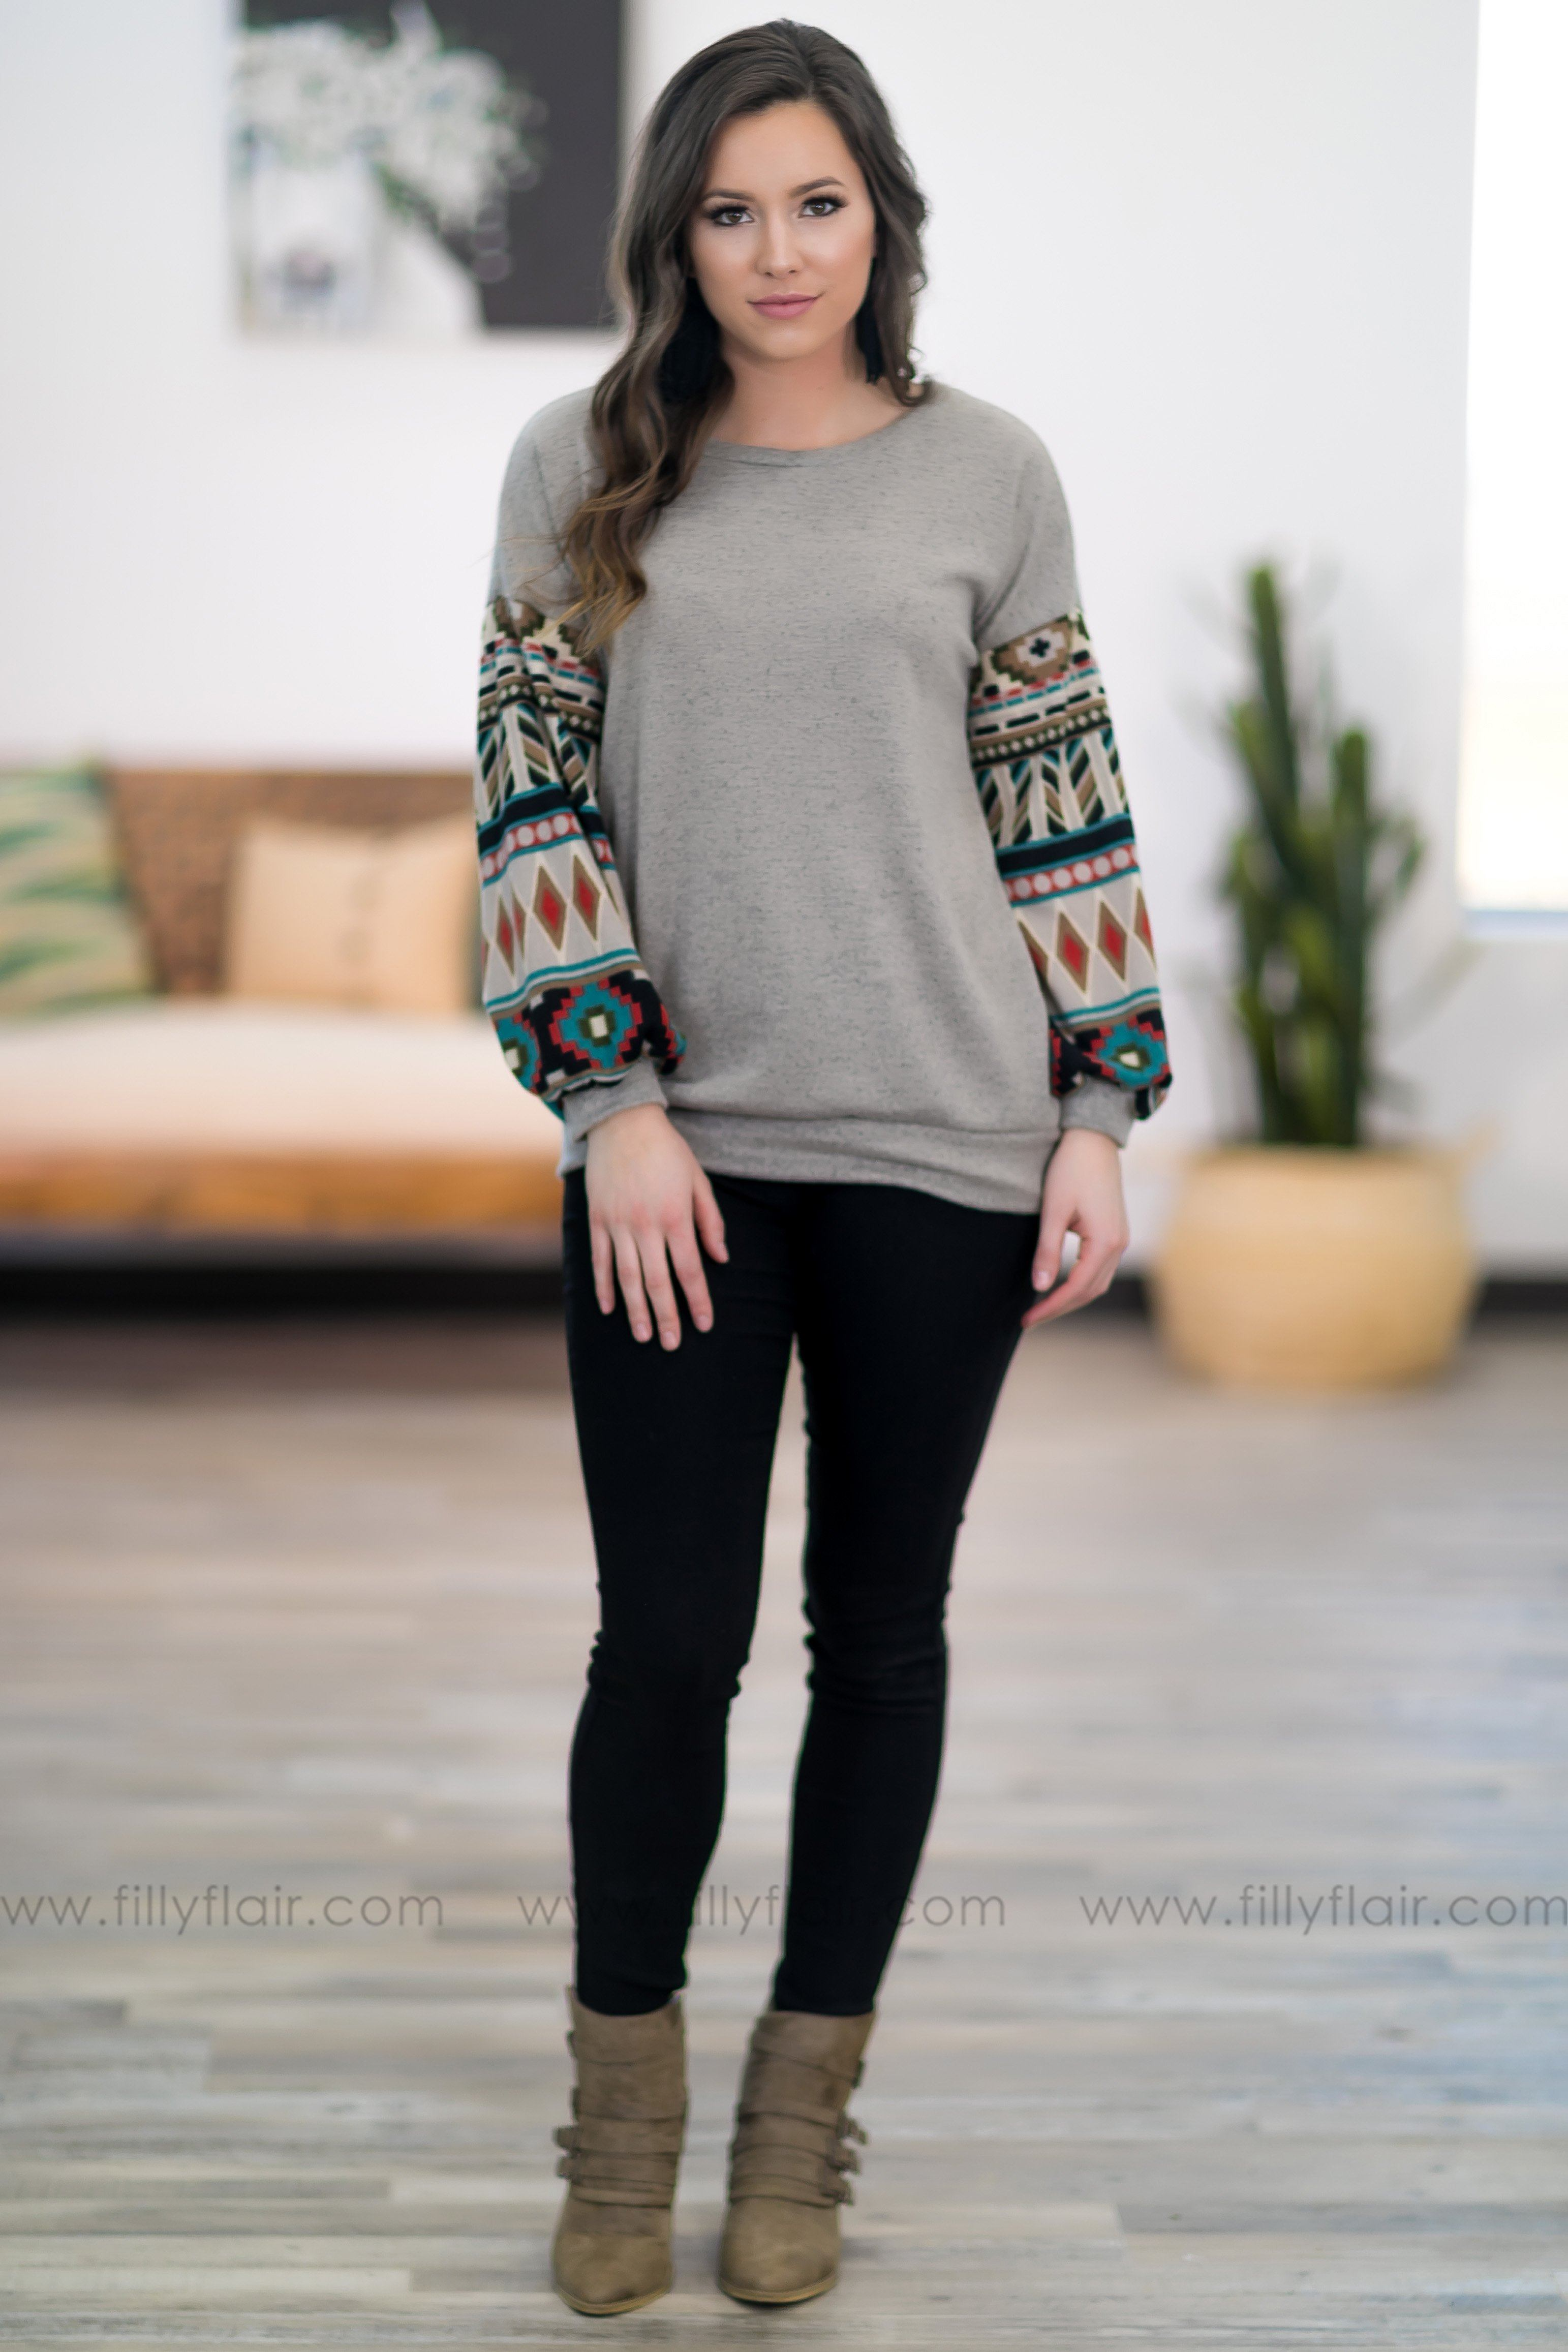 When I Met You Aztec Long Sleeve top in Taupe - Filly Flair